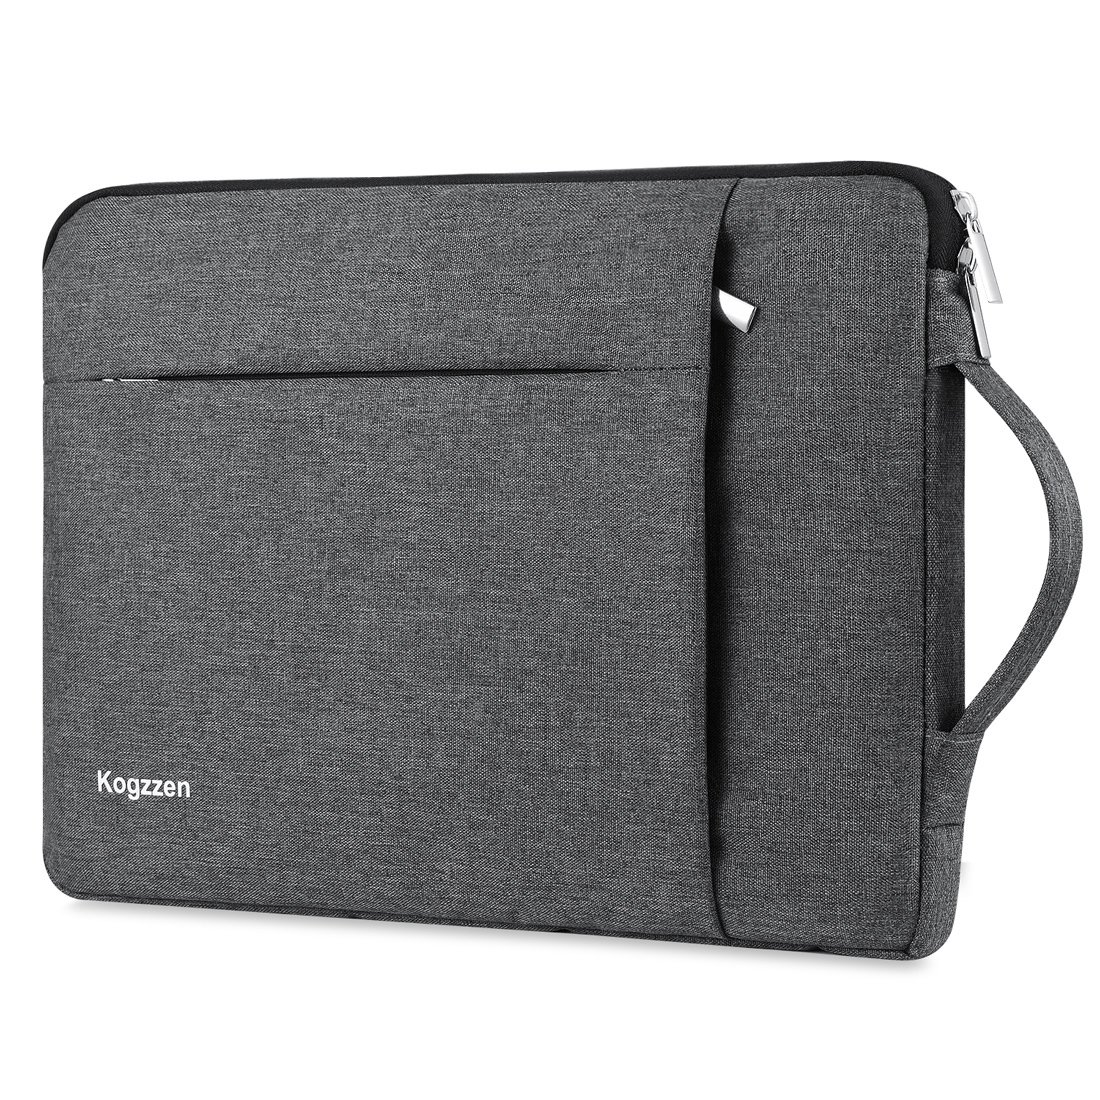 Kogzzen 13-13.5 Inch Laptop Sleeve Shockproof Lightweight Case carrying Bag for MacBook Air 13.3 inch/MacBook Pro 13.3/Surface Book 2 13.5 inch/Surface Laptop 2017/iPad Pro 12.9, Dell HP - Gray